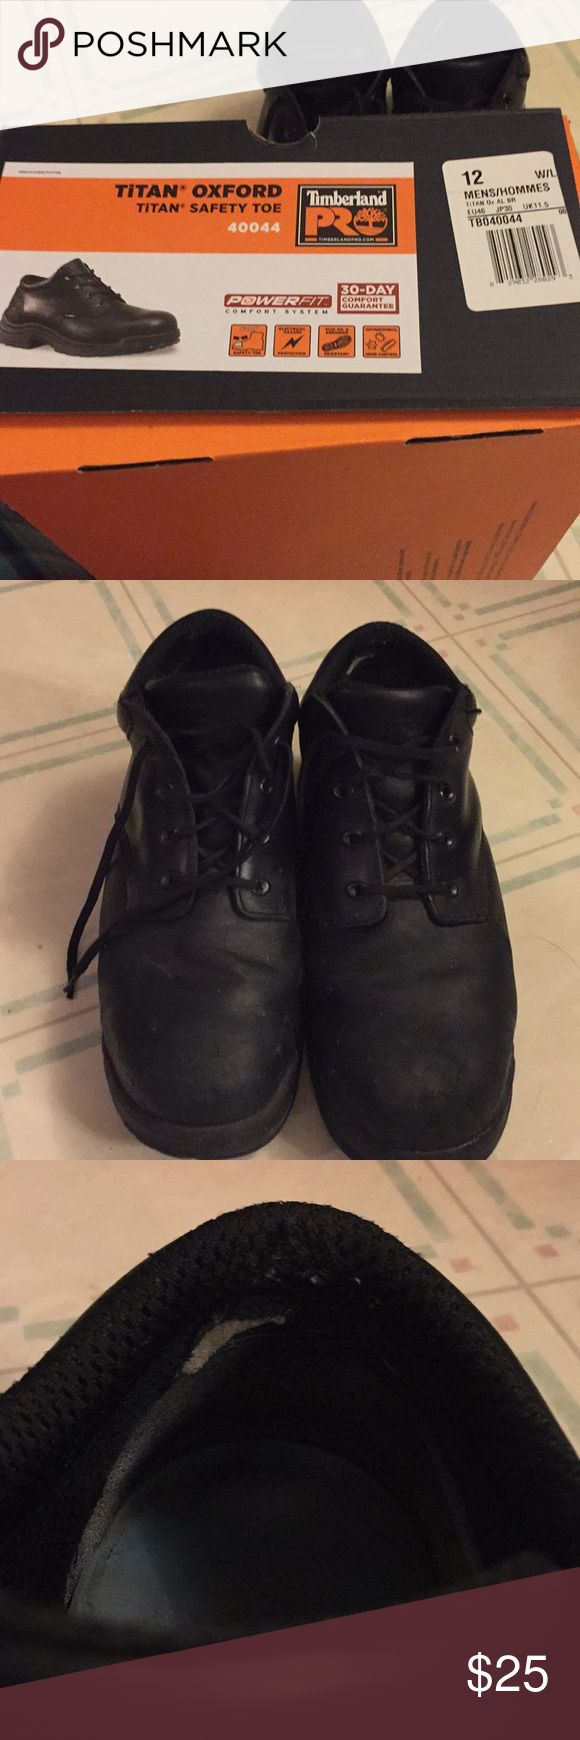 Timberland Safety Toe Shoes Good used condition. Comes with brand new soles. Scuff marks and some wear on the inside heel. Comes with box. Timberland Shoes Oxfords & Derbys